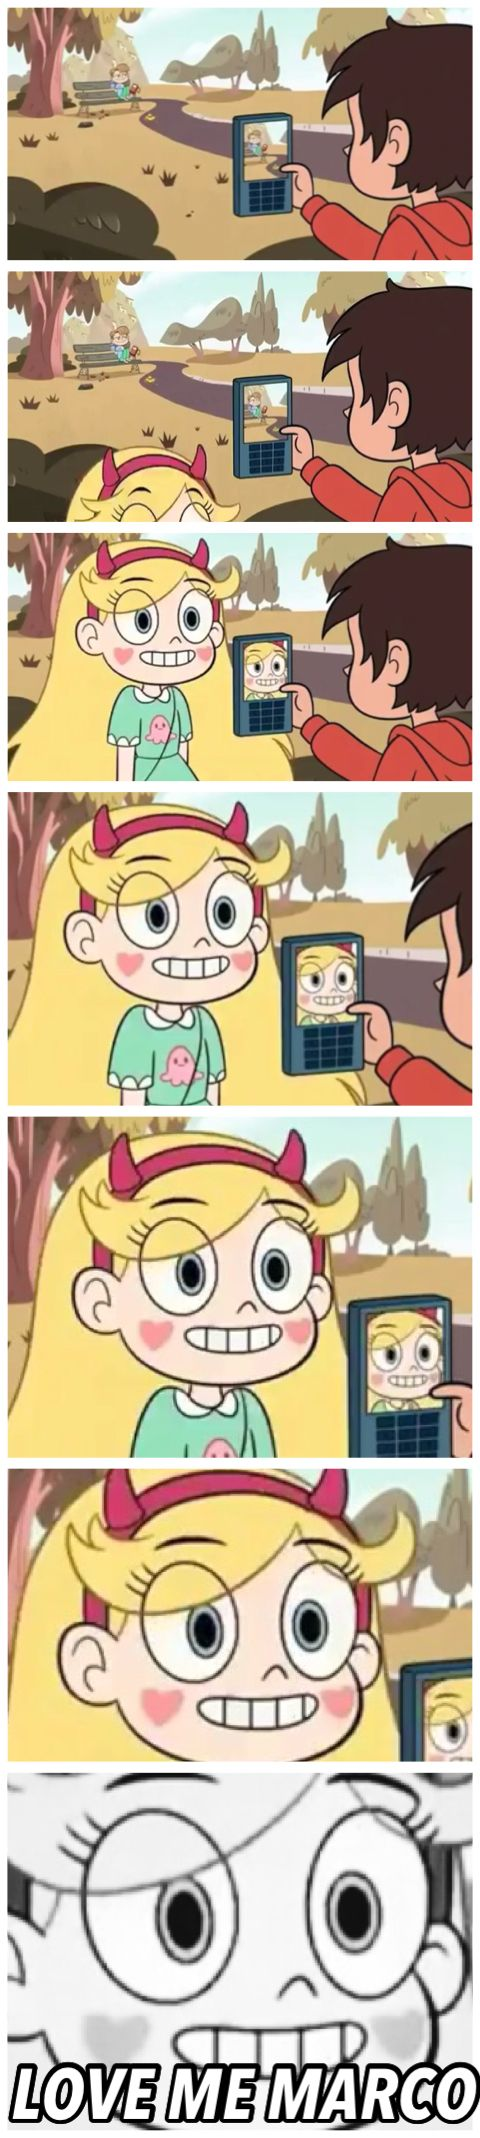 LOVE ME MARCO  Star vs the Forces of Evil Credit @livieblue